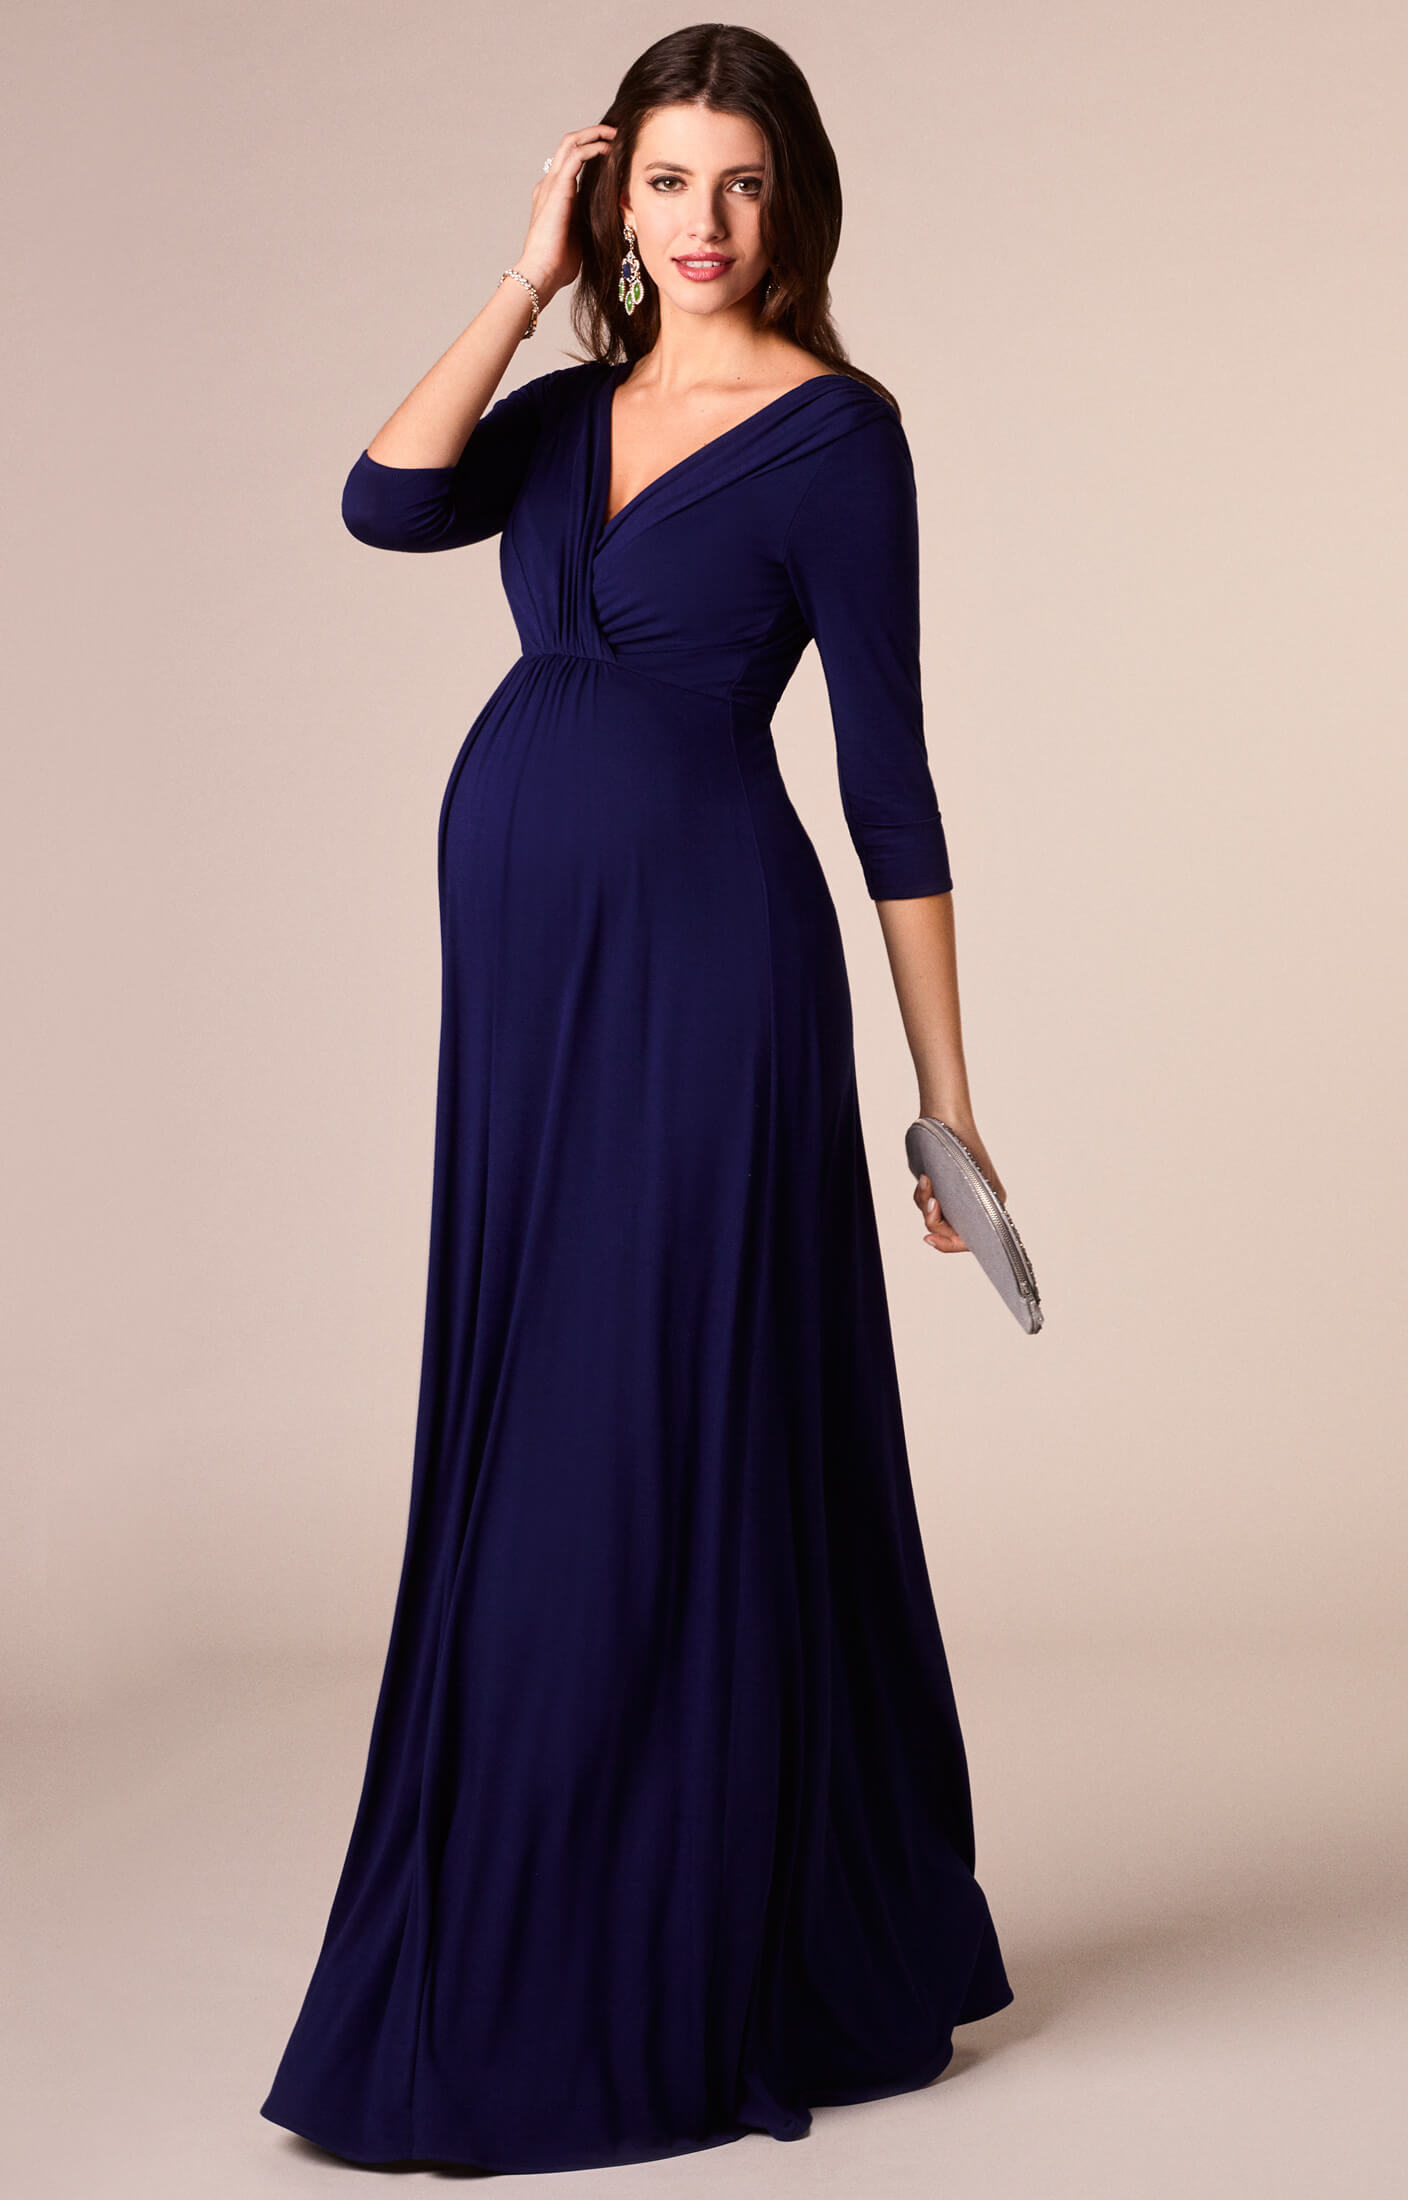 Willow maternity gown long eclipse blue maternity for Cocktail dresses to wear to a wedding